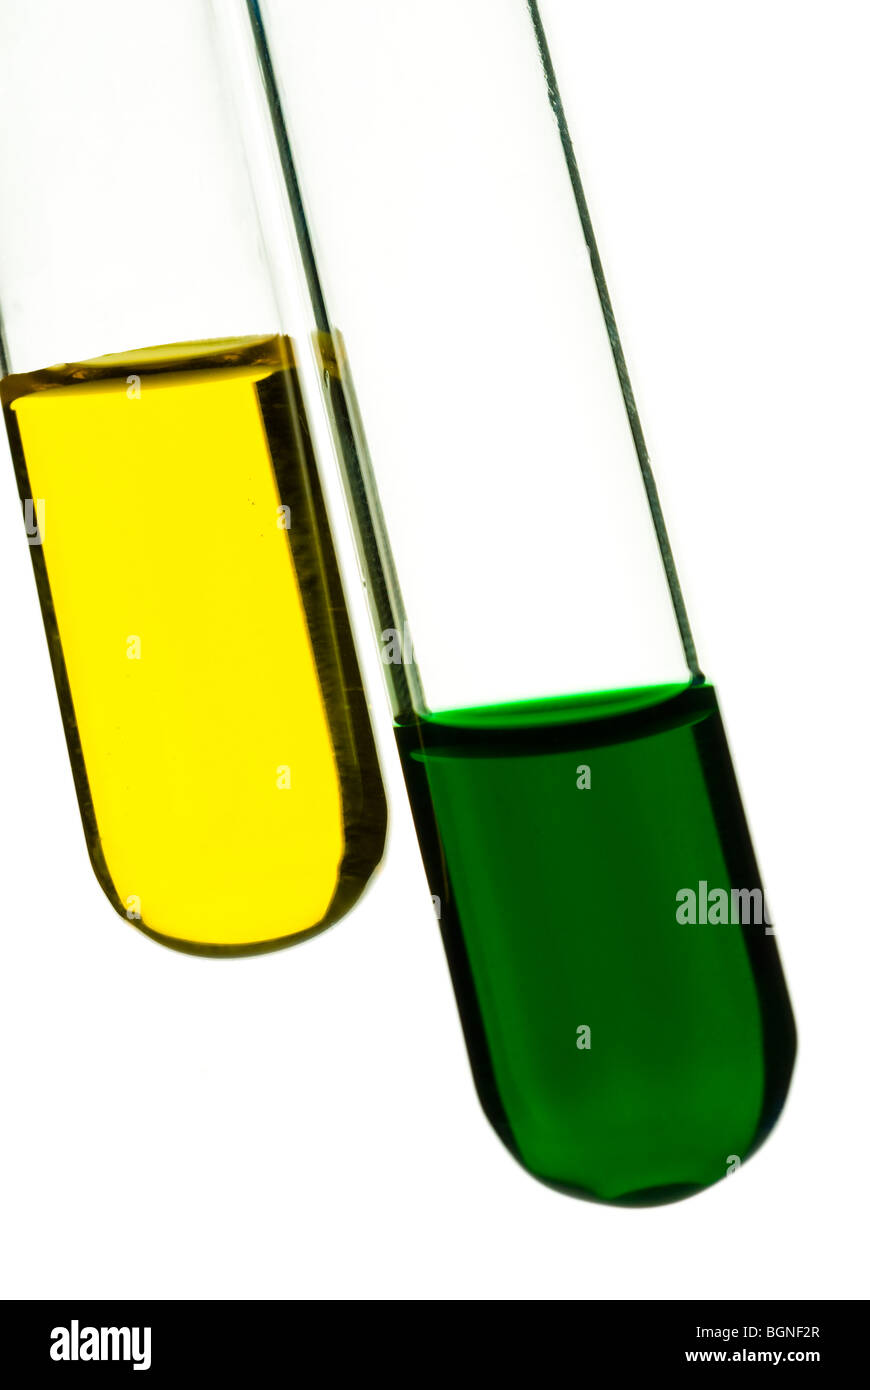 close-up of test-tubes with green and yellow samples - Stock Image